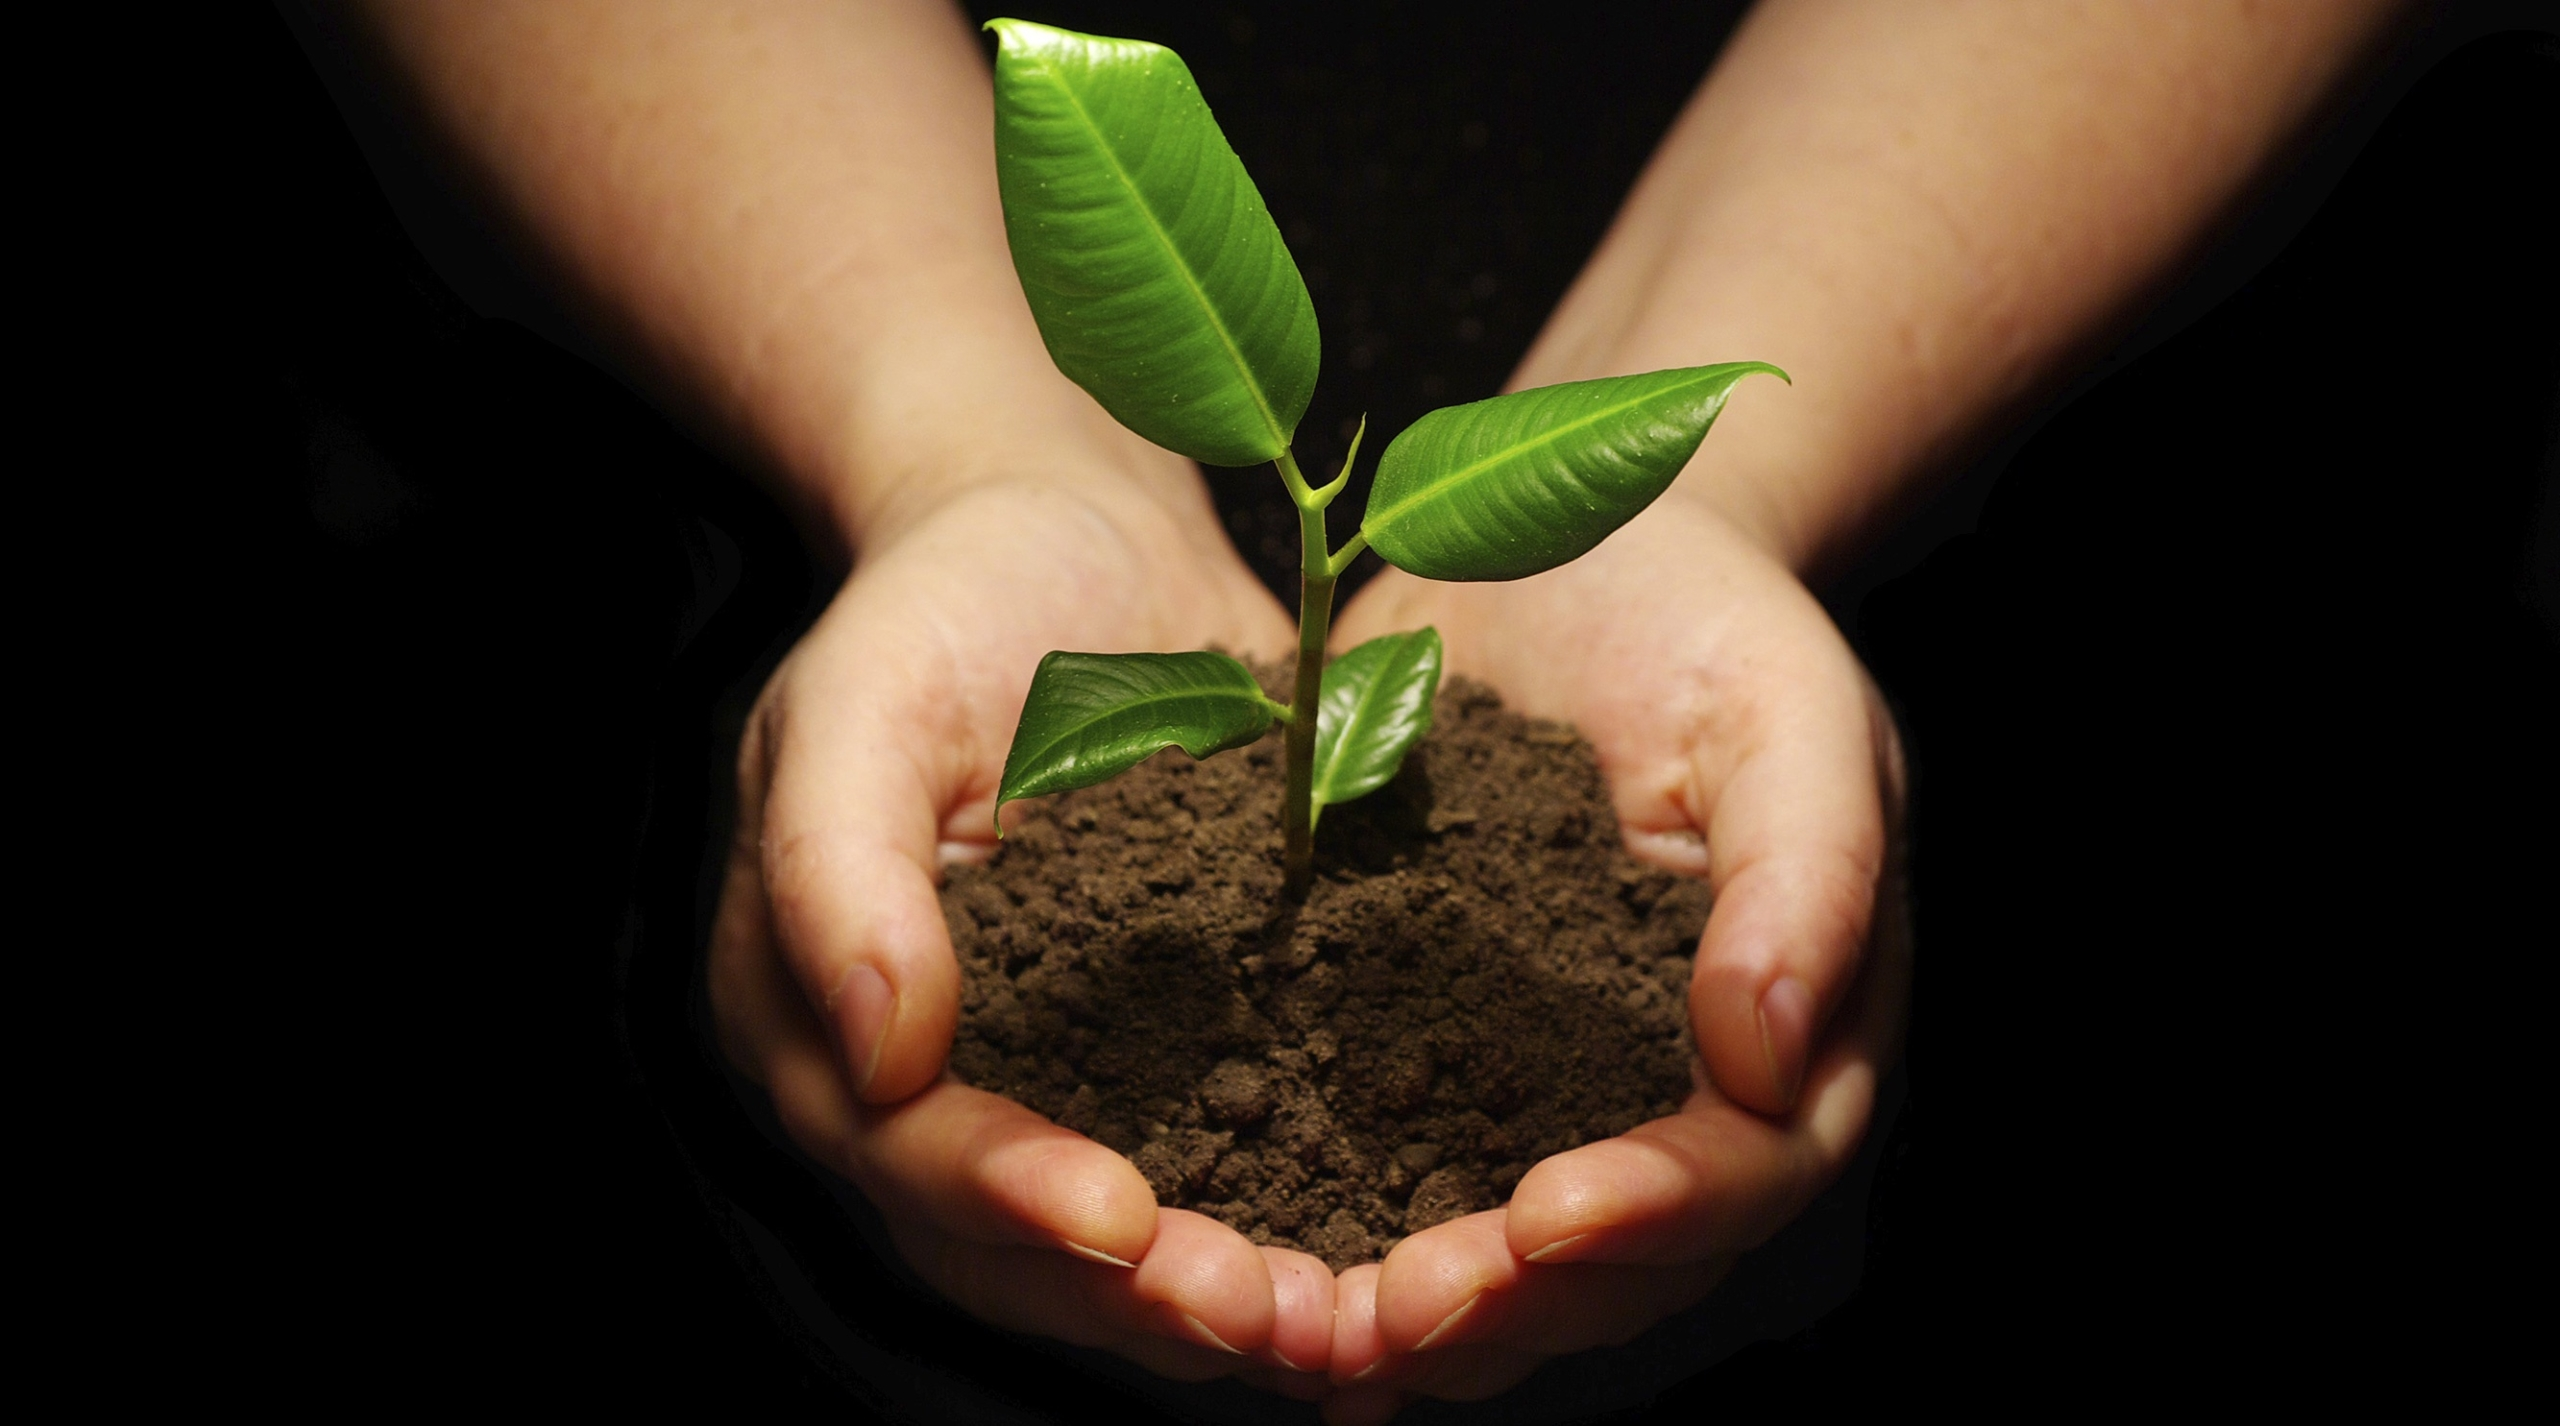 reforestation and replanting trees